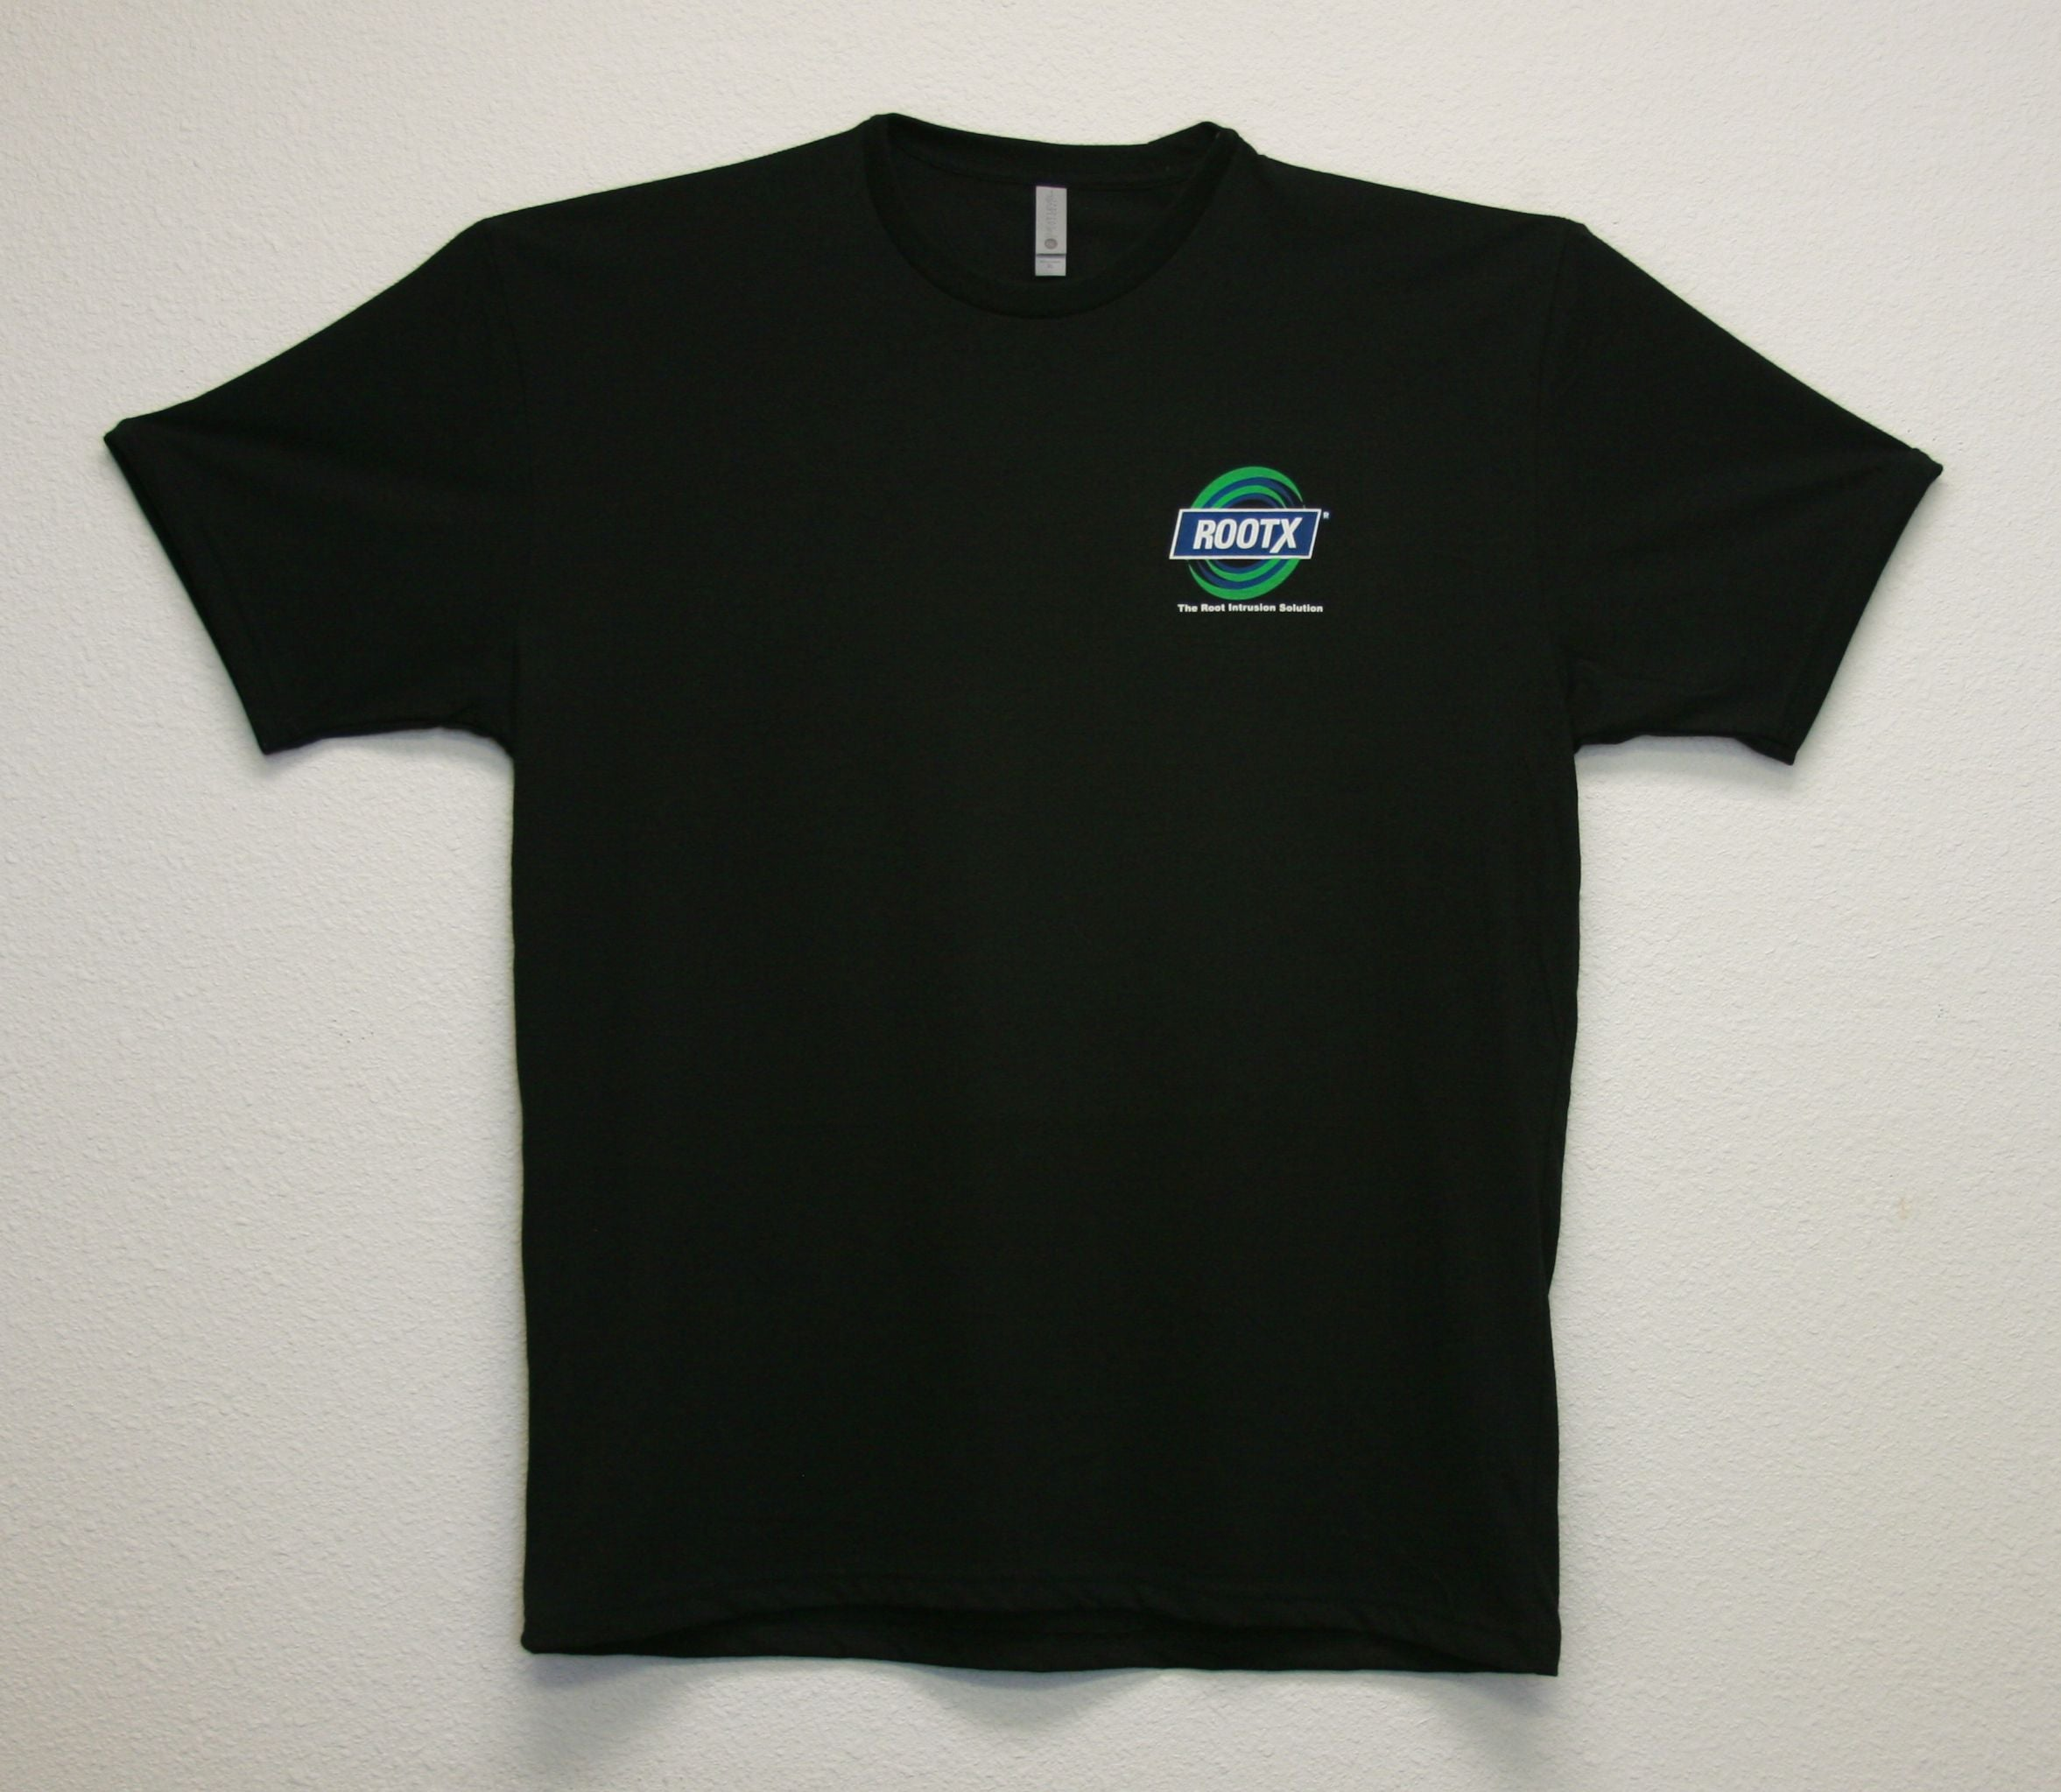 RootX T-Shirt